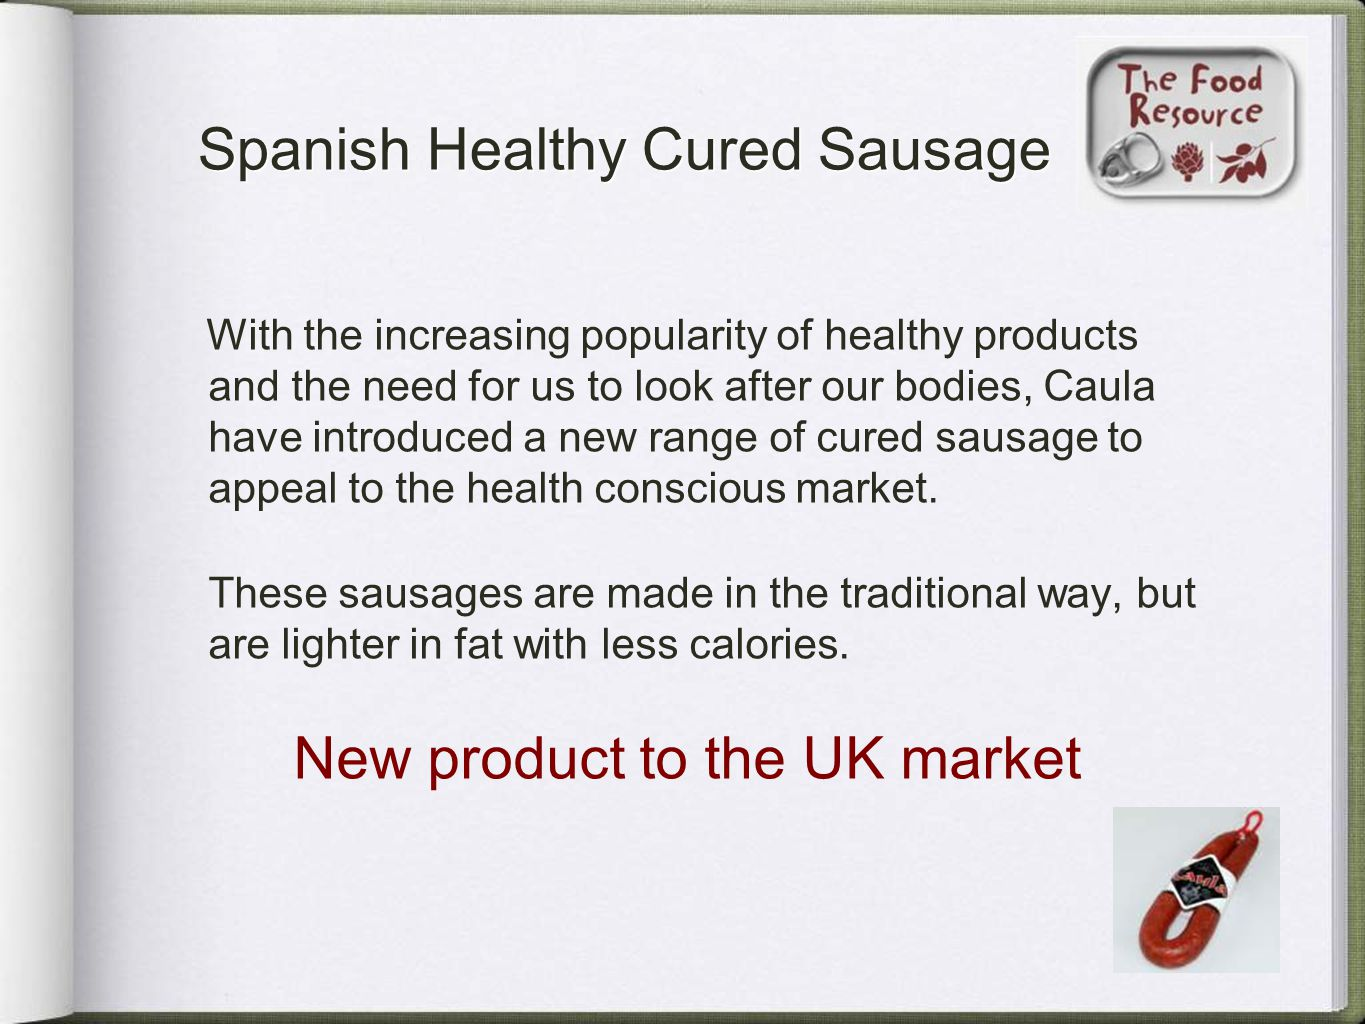 With the increasing popularity of healthy products and the need for us to look after our bodies, Caula have introduced a new range of cured sausage to